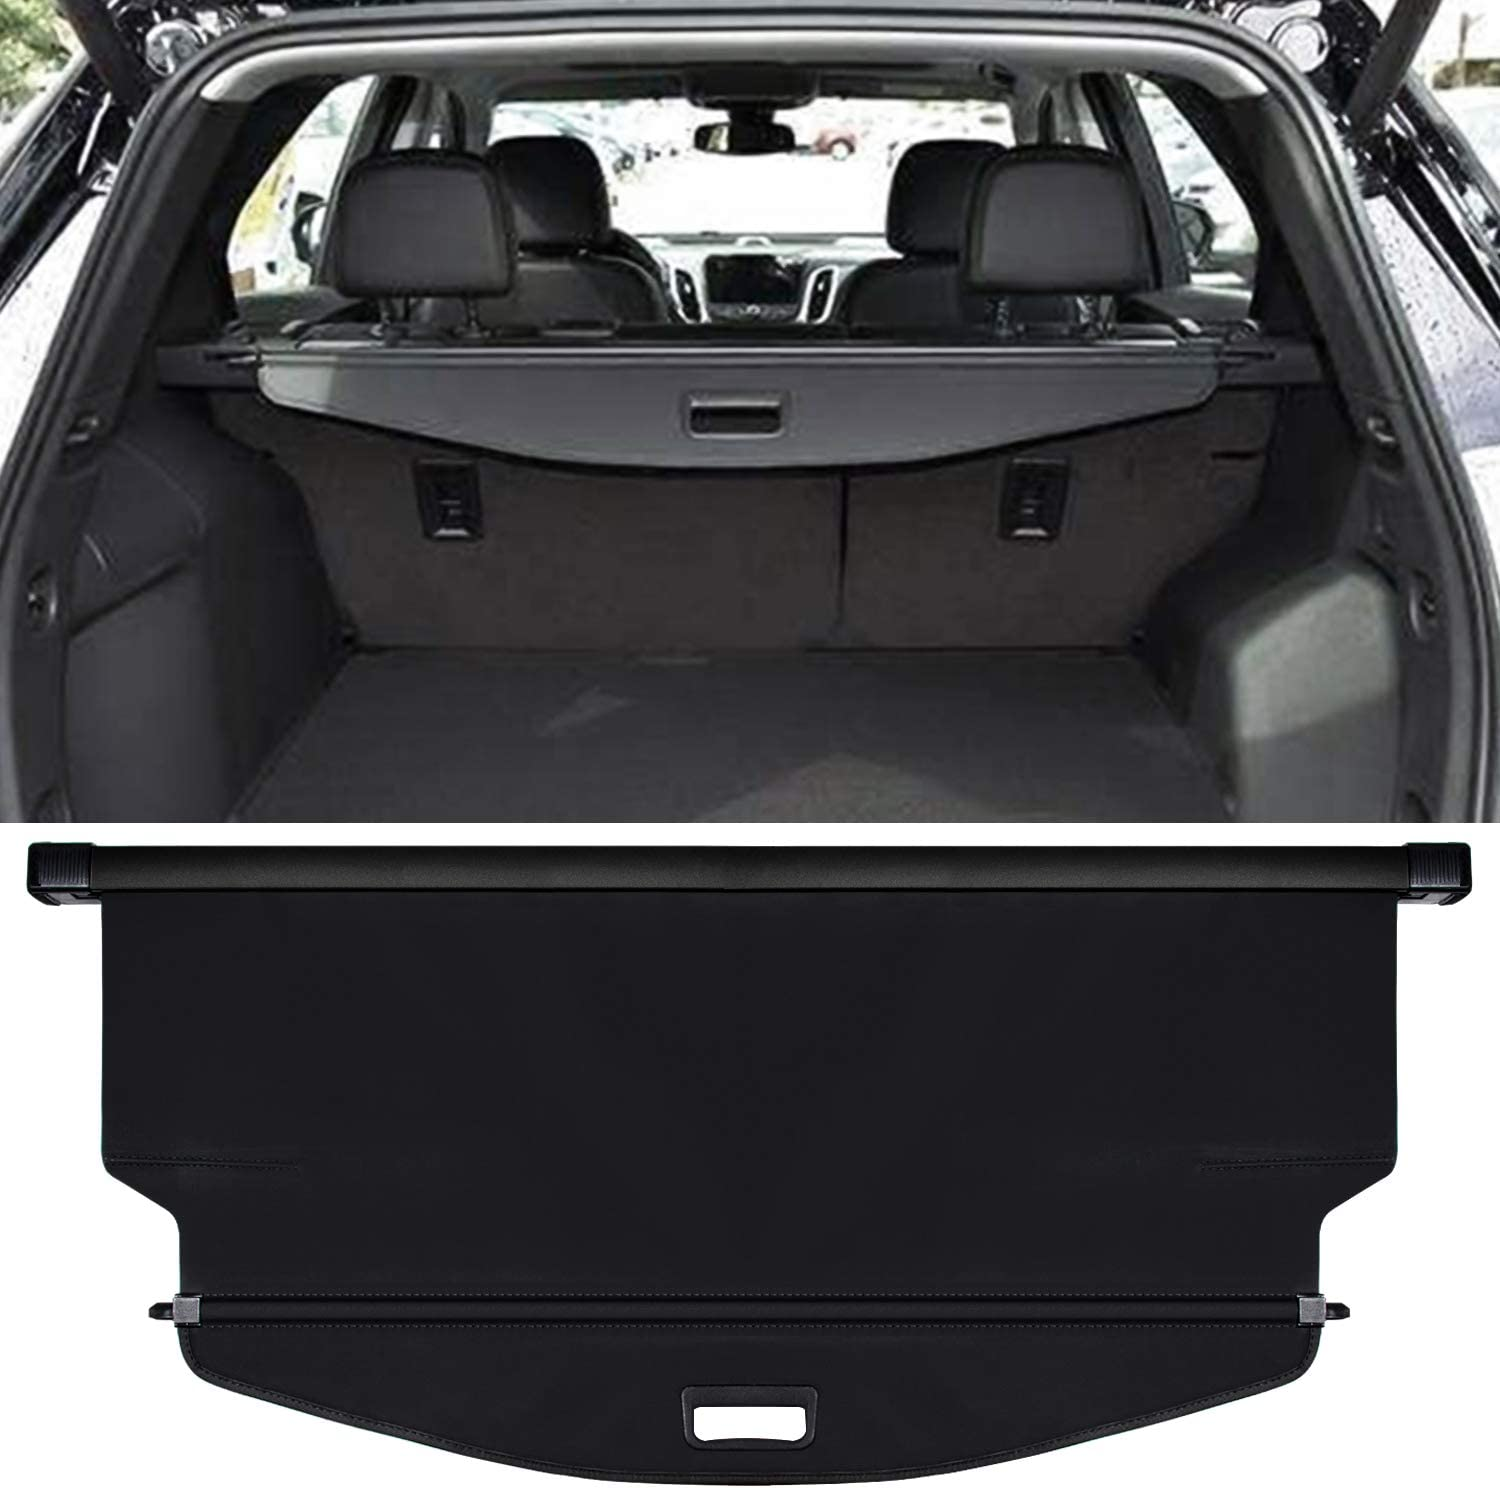 Cosilee Retractable Rear Trunk Parcel Shelf Security Shield Cargo Luggage Security Cover Shade Compatible for Chevrolet Equinox GMC Terrain 2010-2017